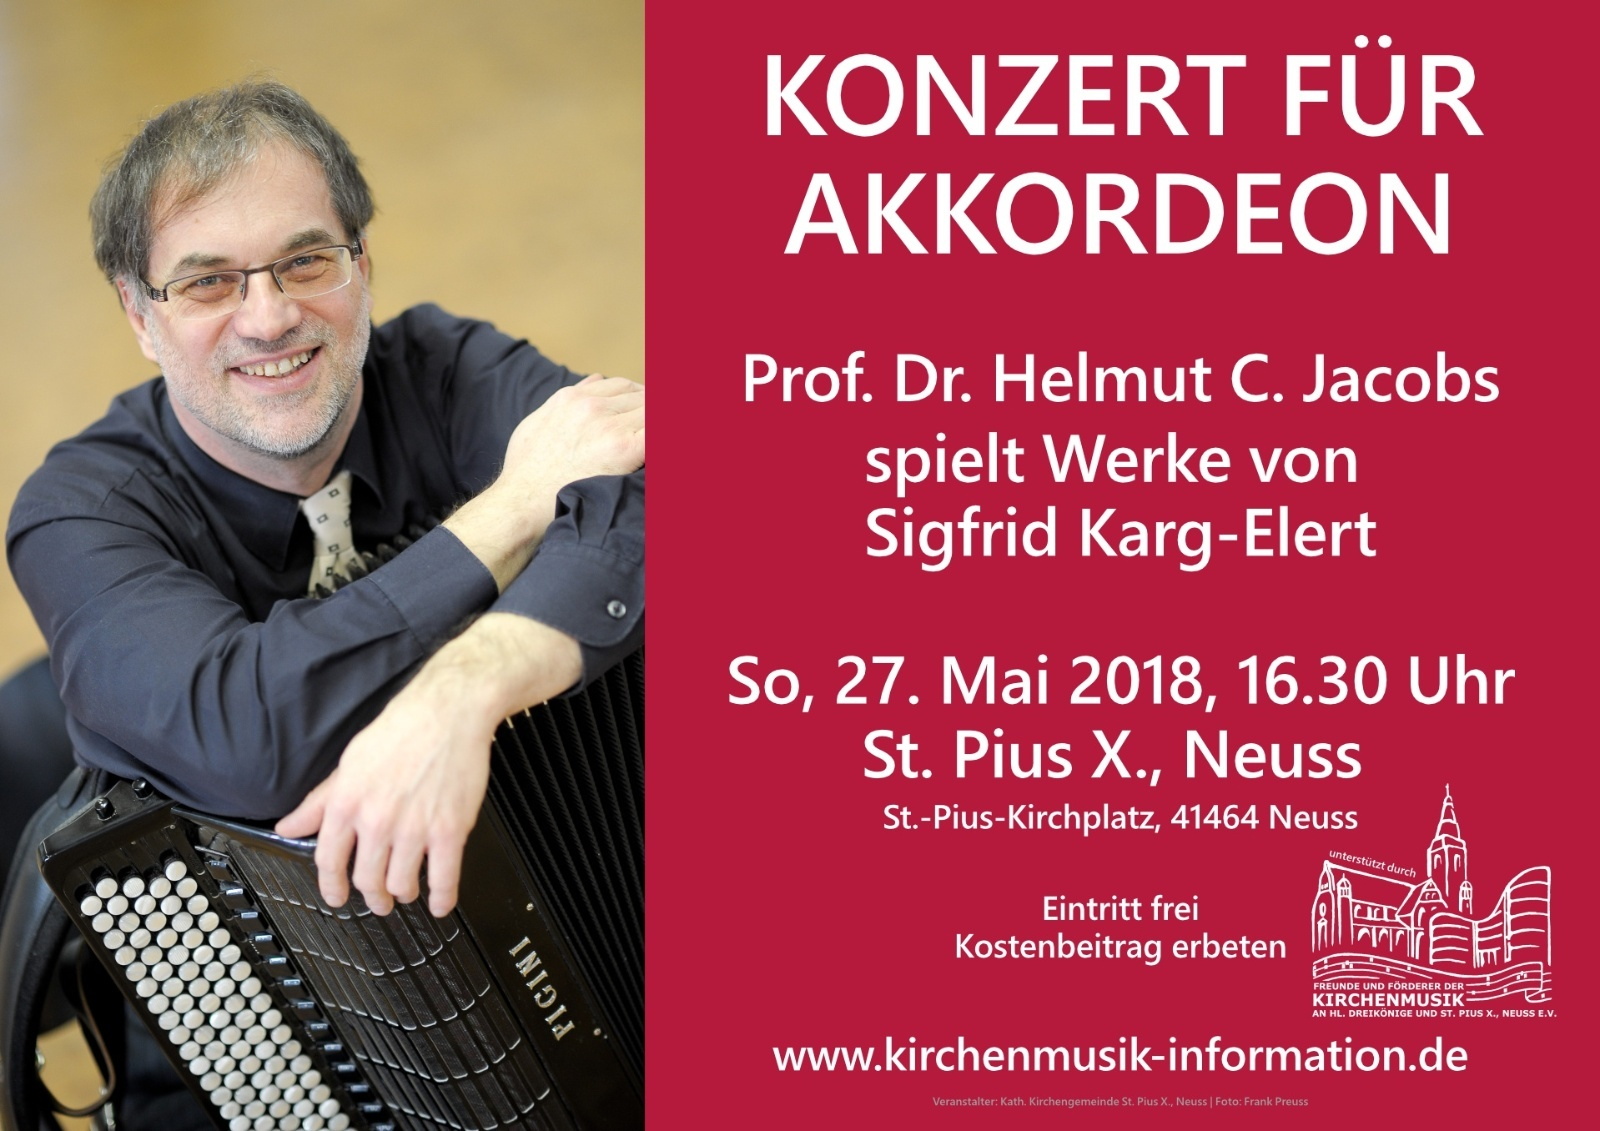 Konzert für Akkordeon am 27. Mai 2018 in St. Pius